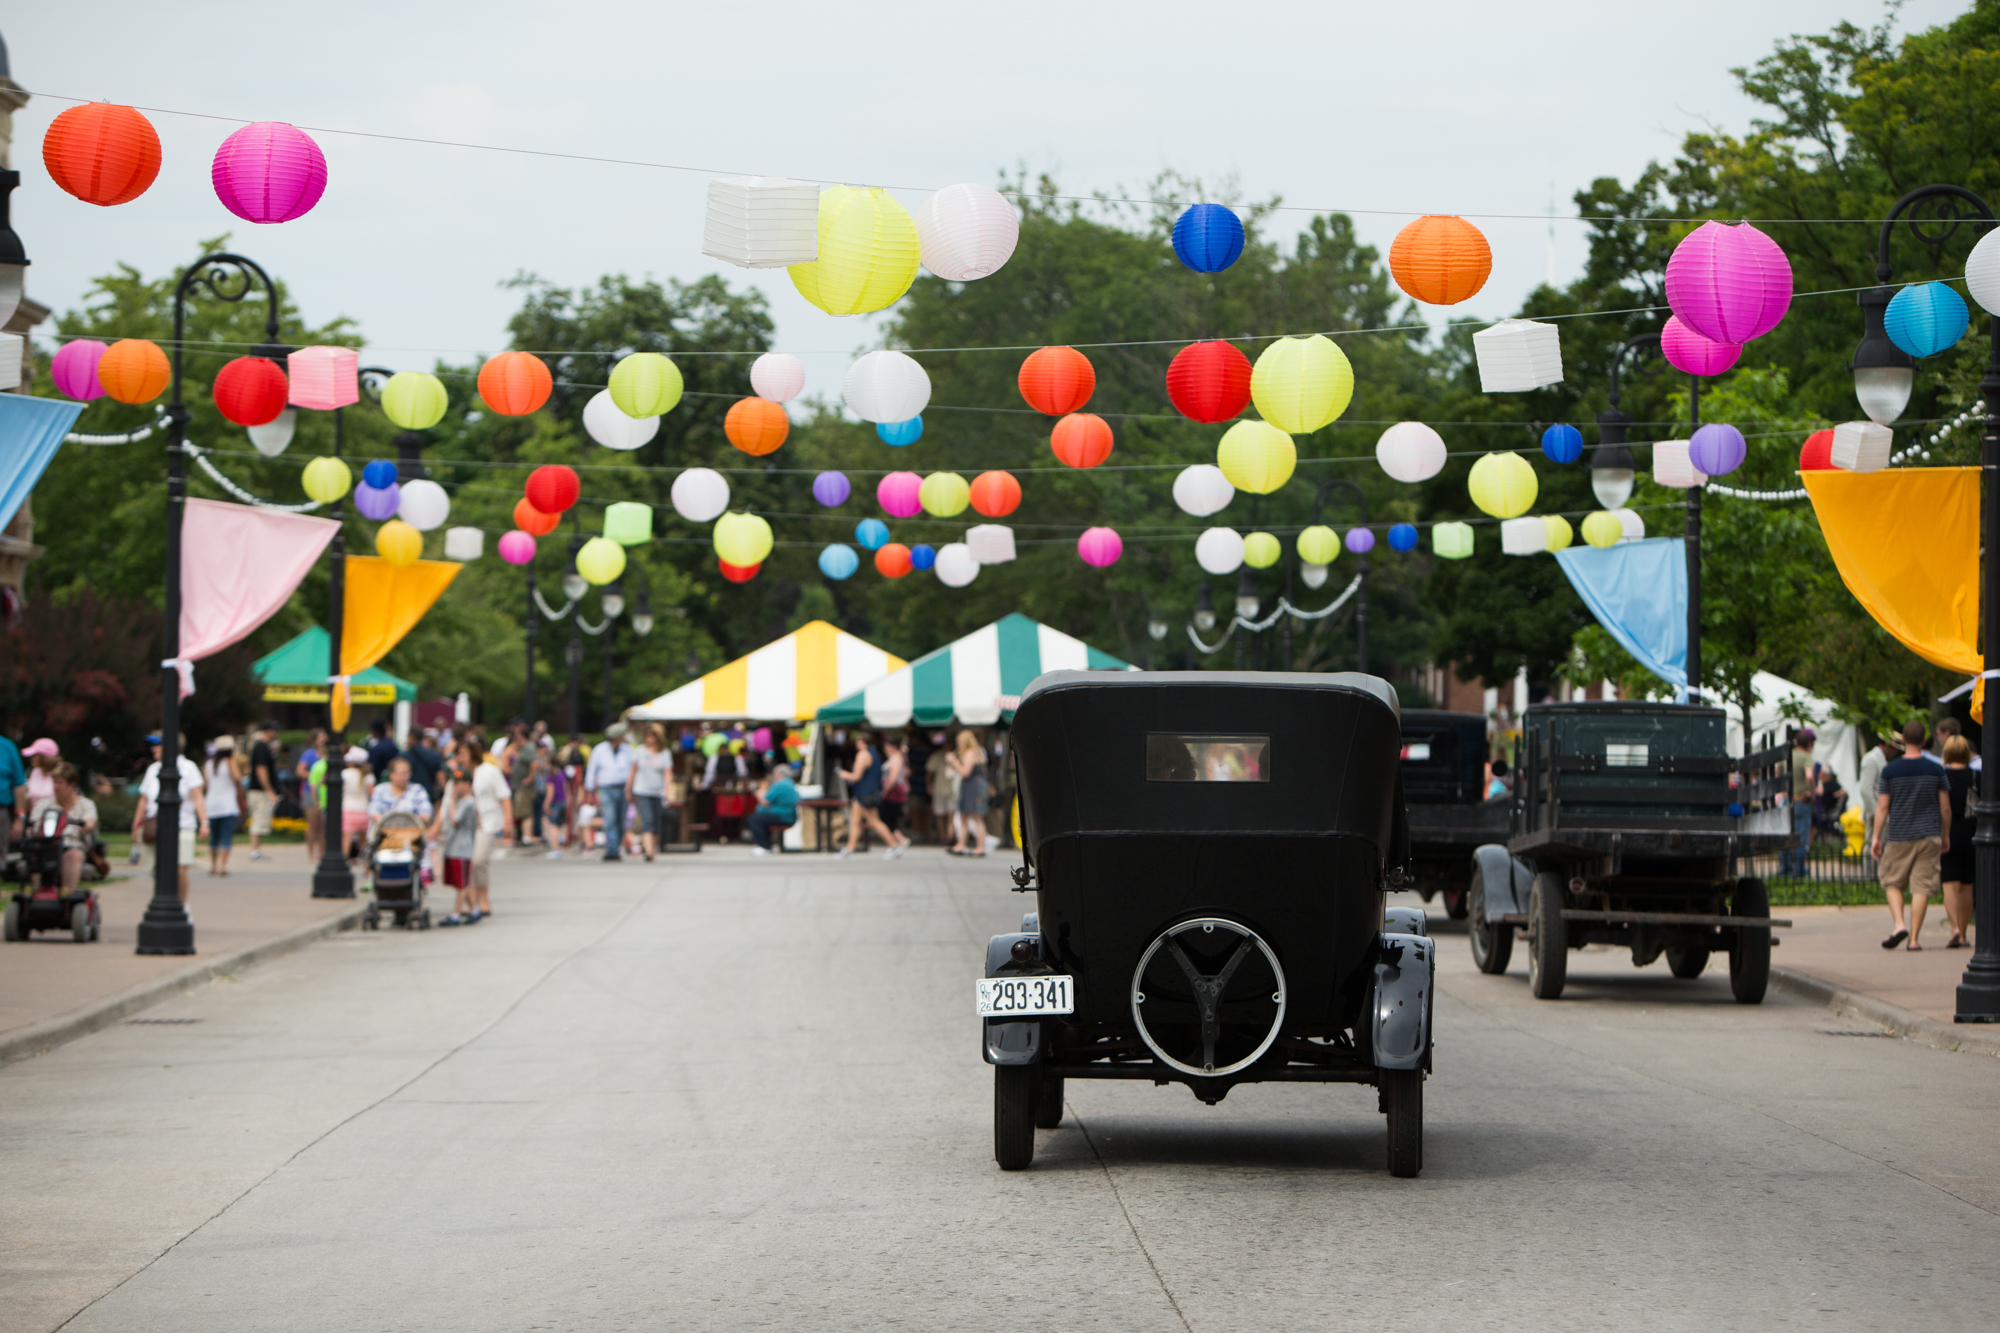 Antique car driving down a street festooned with balloons